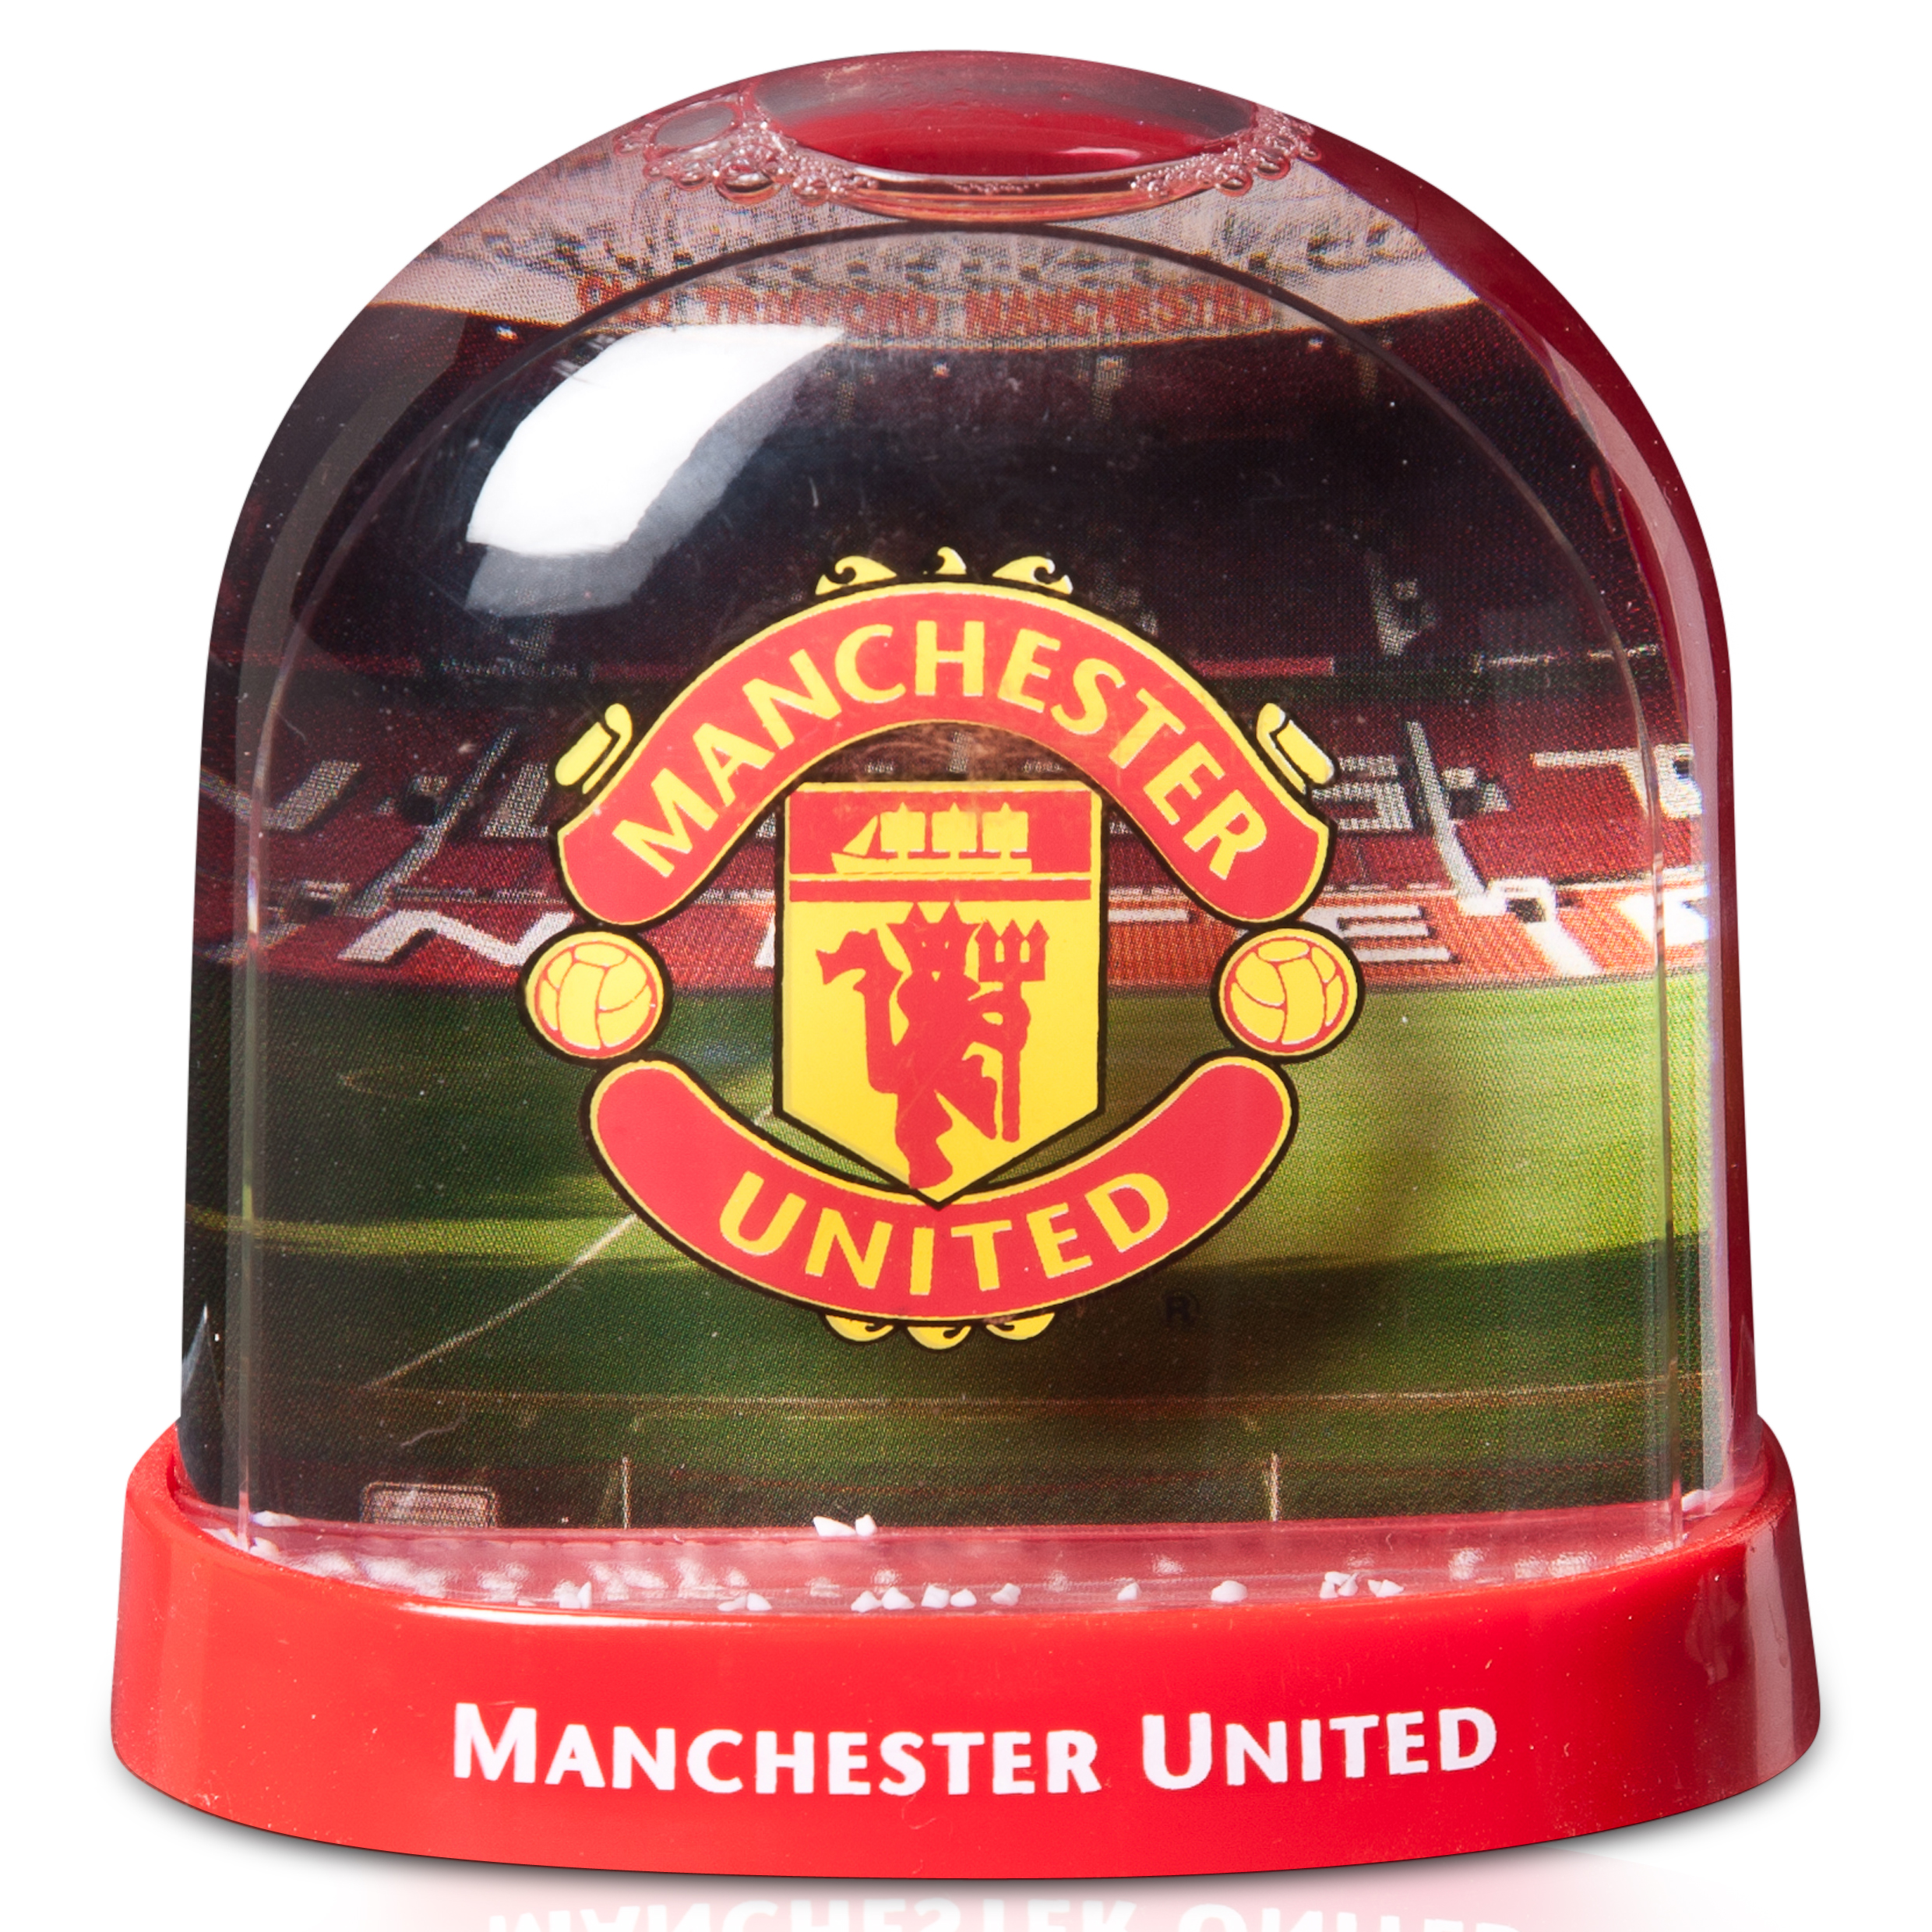 Manchester United Christmas Stadium Snow Dome